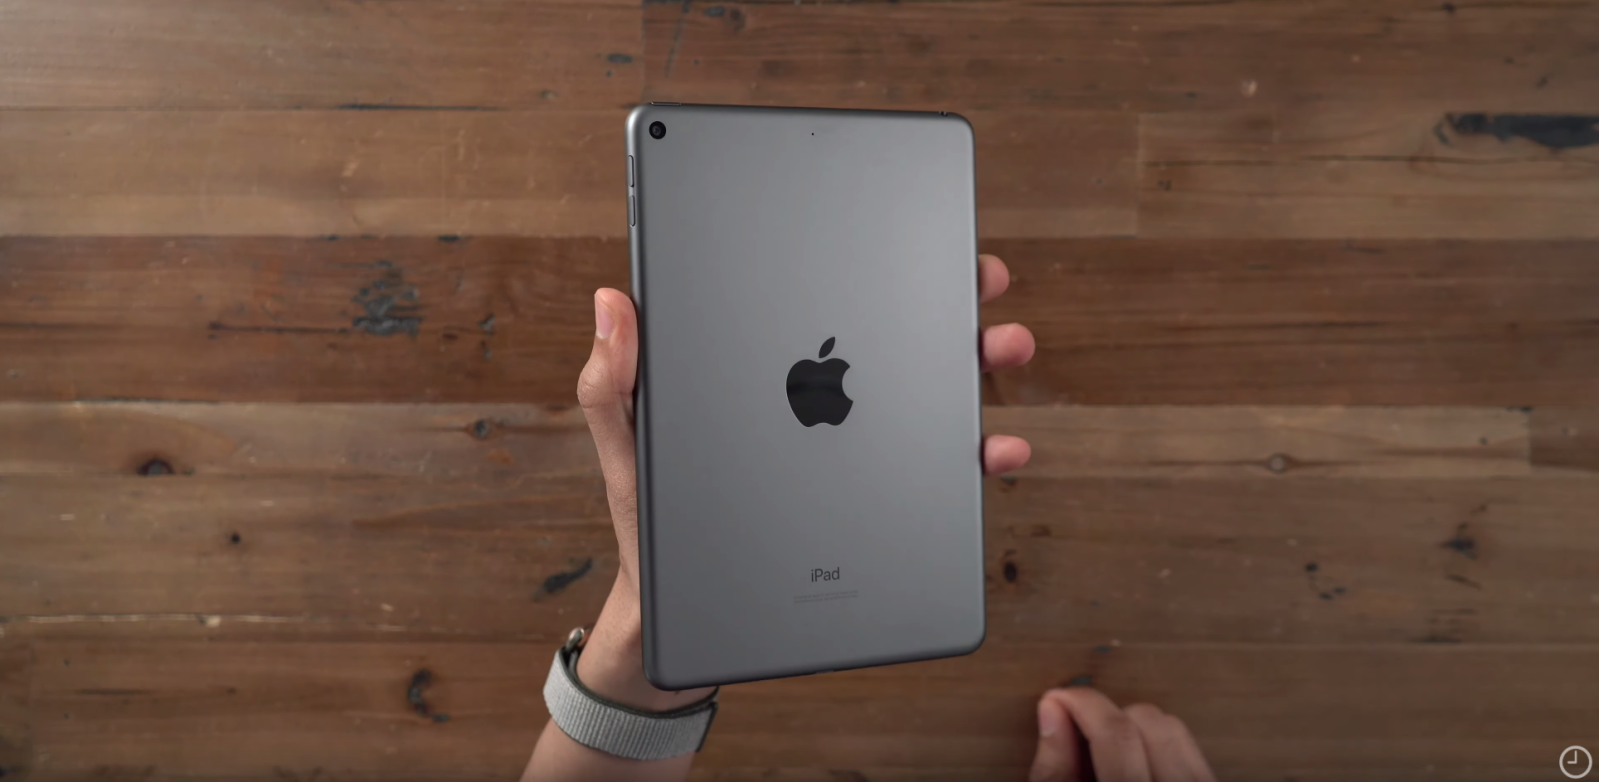 9to5Rewards: Enter to win Apple's new iPad mini [Giveaway